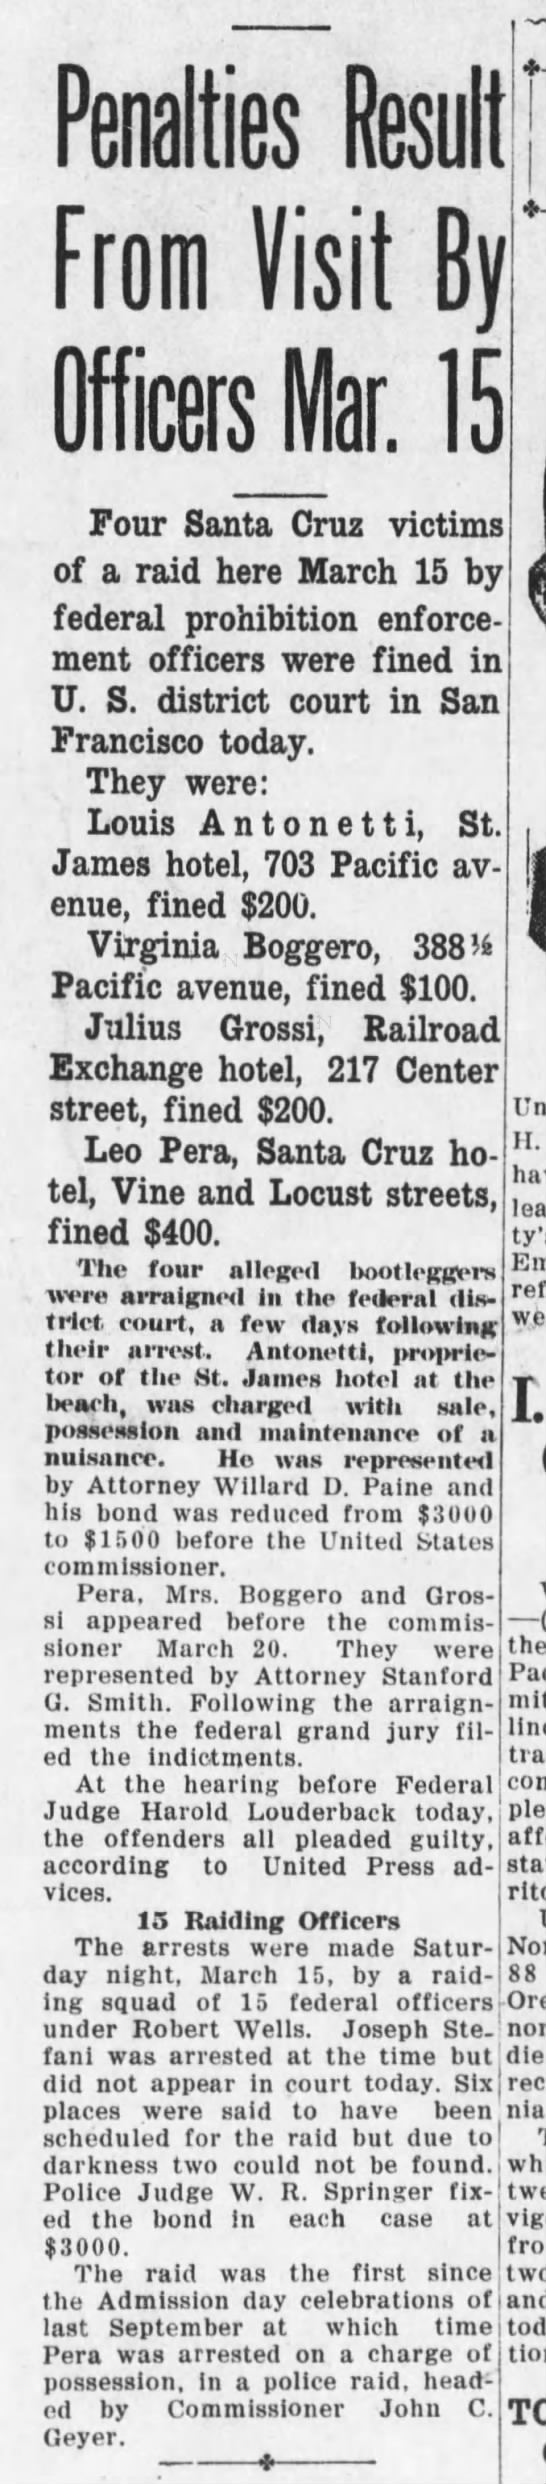 Santa Cruz Evening News, 16 April 1930, Page 1, Column 1 -